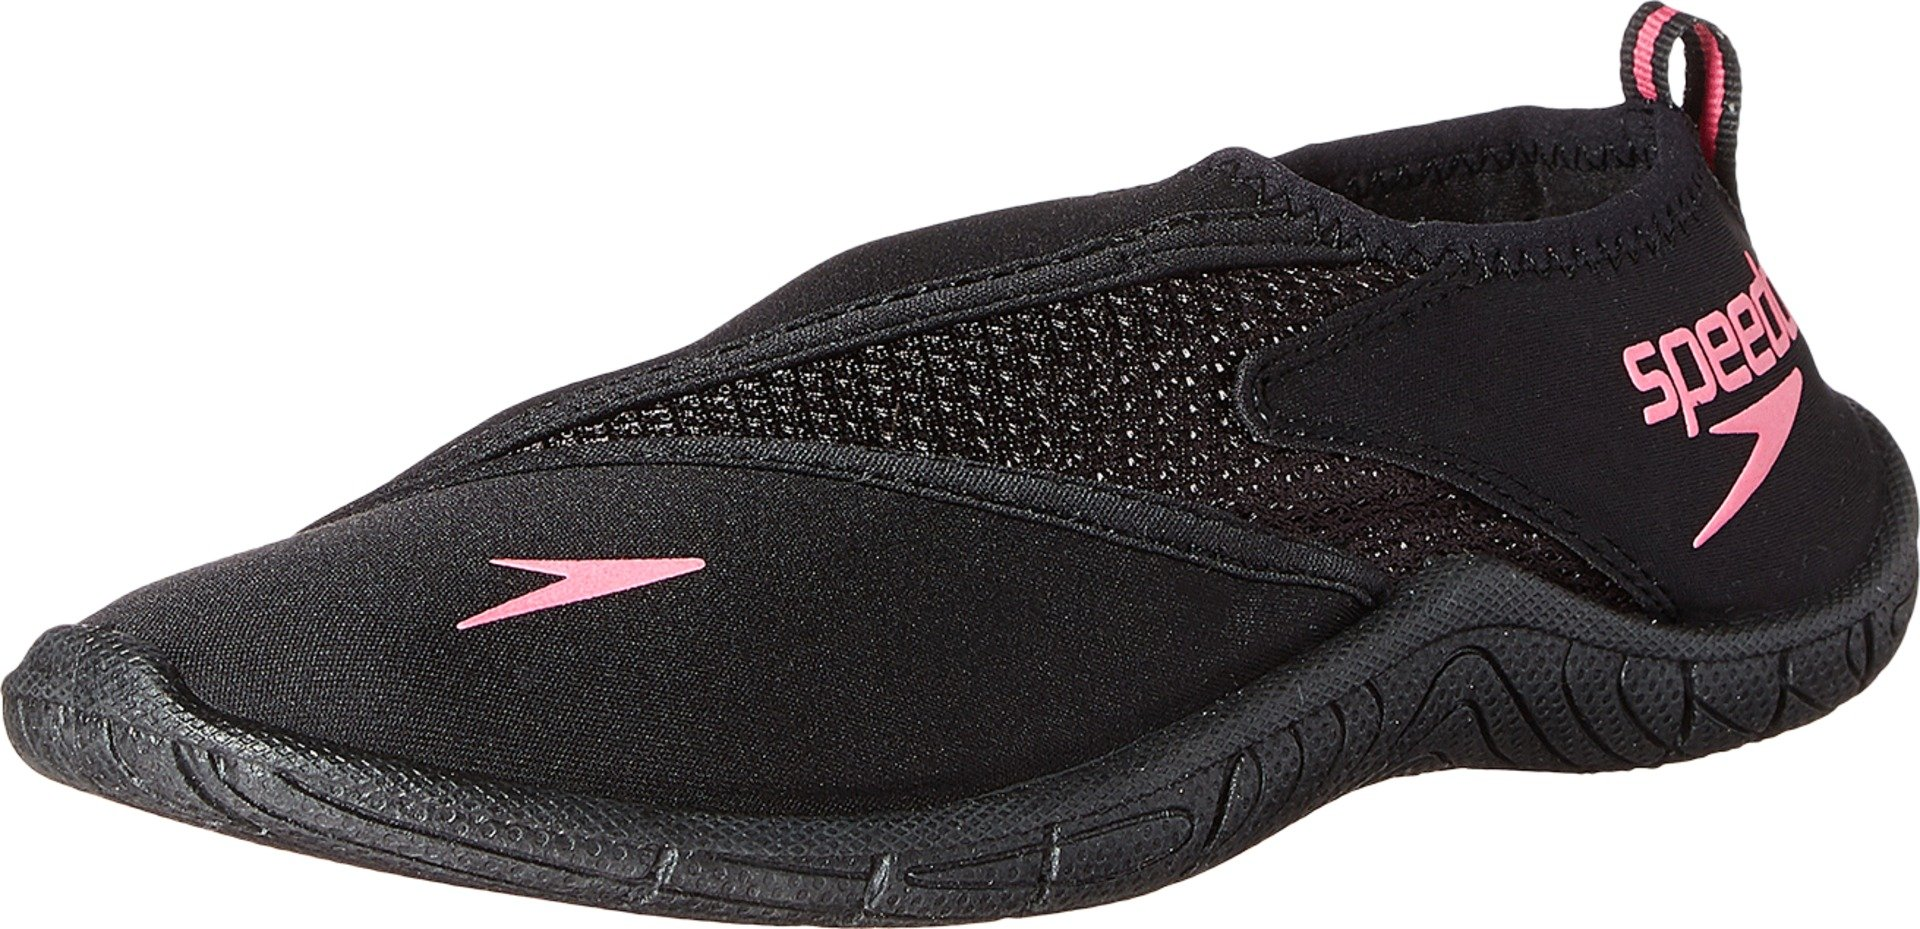 Speedo Women's Surfwalker Pro 3.0 Water Shoe, Black/Pink, 11 by Speedo